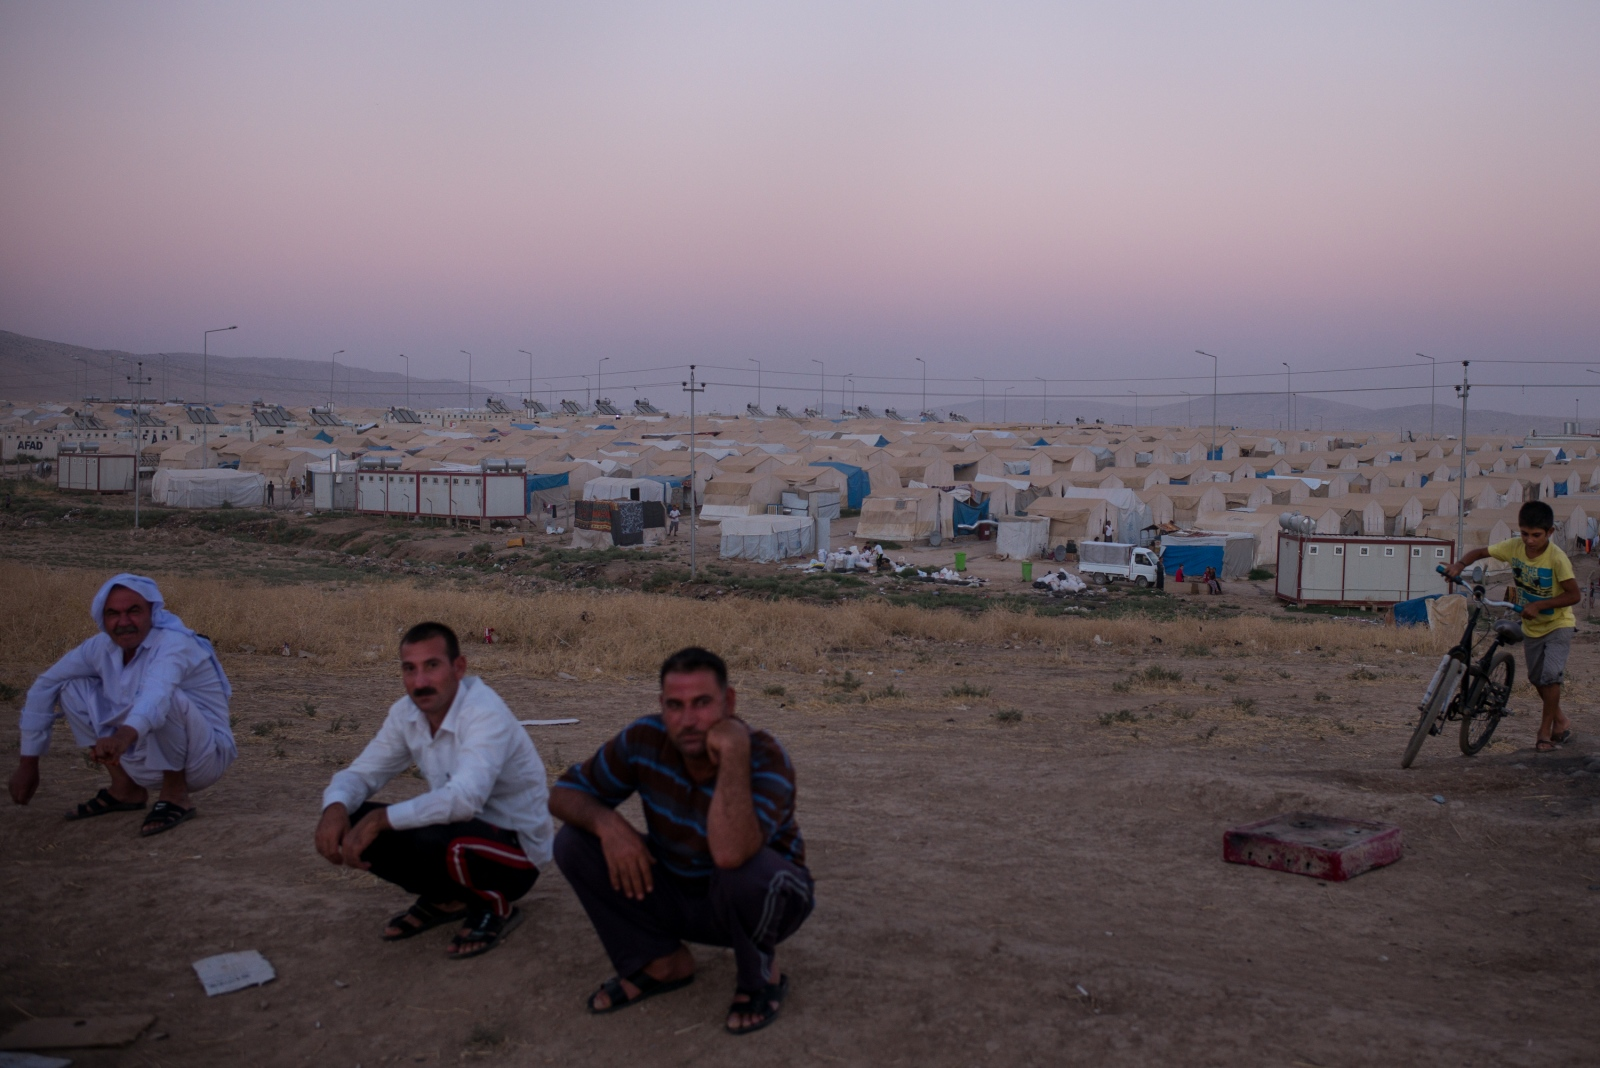 Yazidi men sit atop a hill overlooking the Shariya camp for internally displaced persons near Dohuk in Kurdistan, Iraq, on Thursday, September 1, 2016. Shariya is host to nearly 19,000 Yazidis who fled from Sinjar two years ago during the ISIS onslaught.